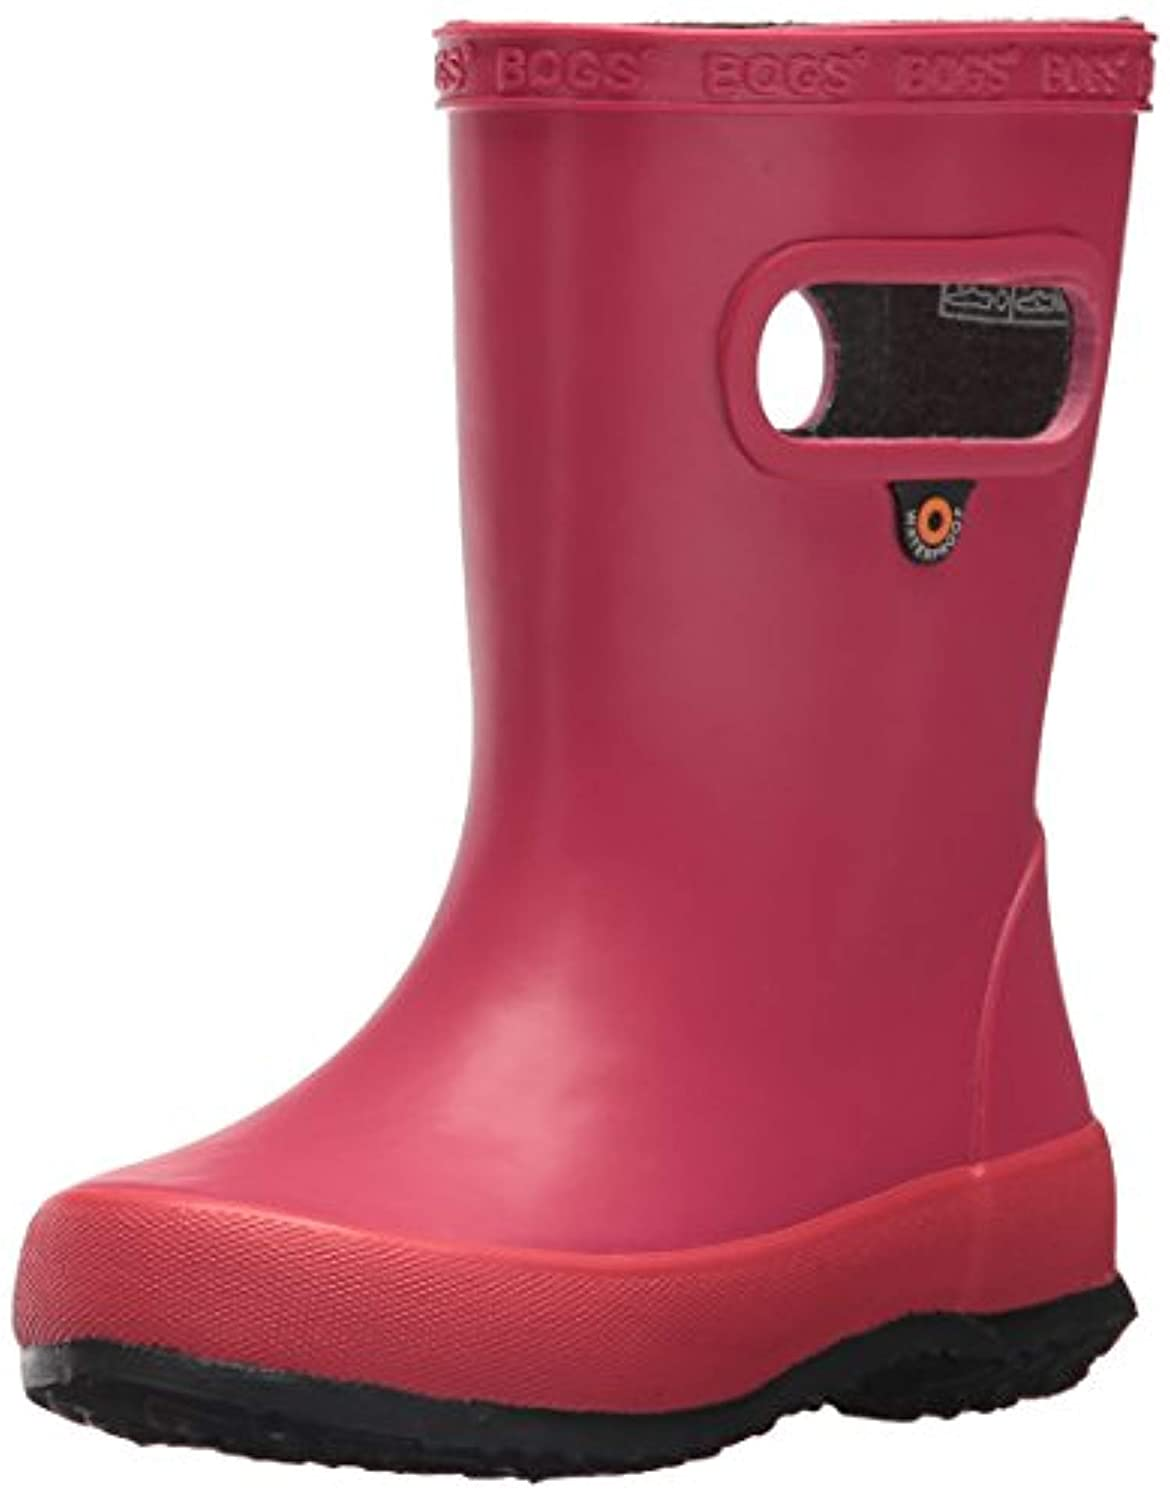 rain boots Bundle Bogs Kids Skipper Solid Boot /& Packable Umbrella